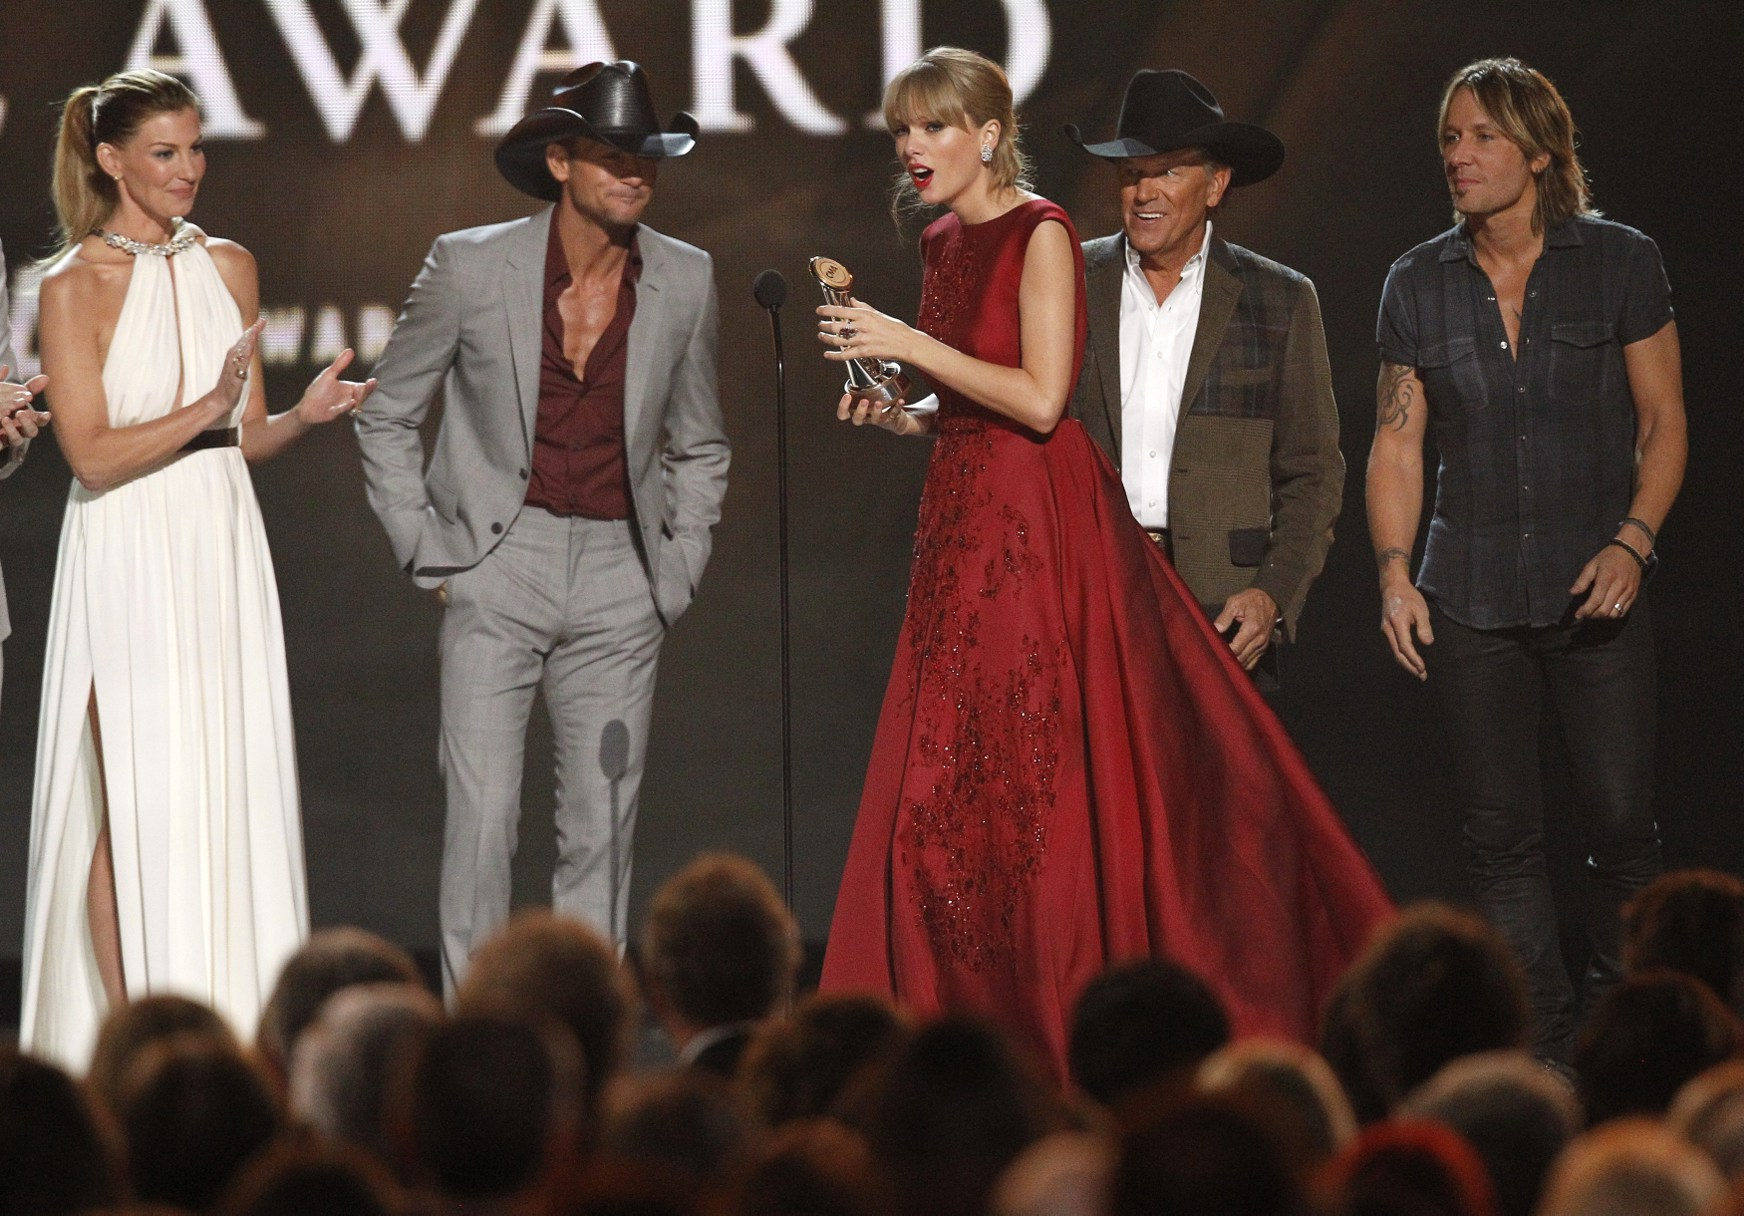 http://www.taylorpictures.net/albums/app/2013/cmaawards/039.jpg